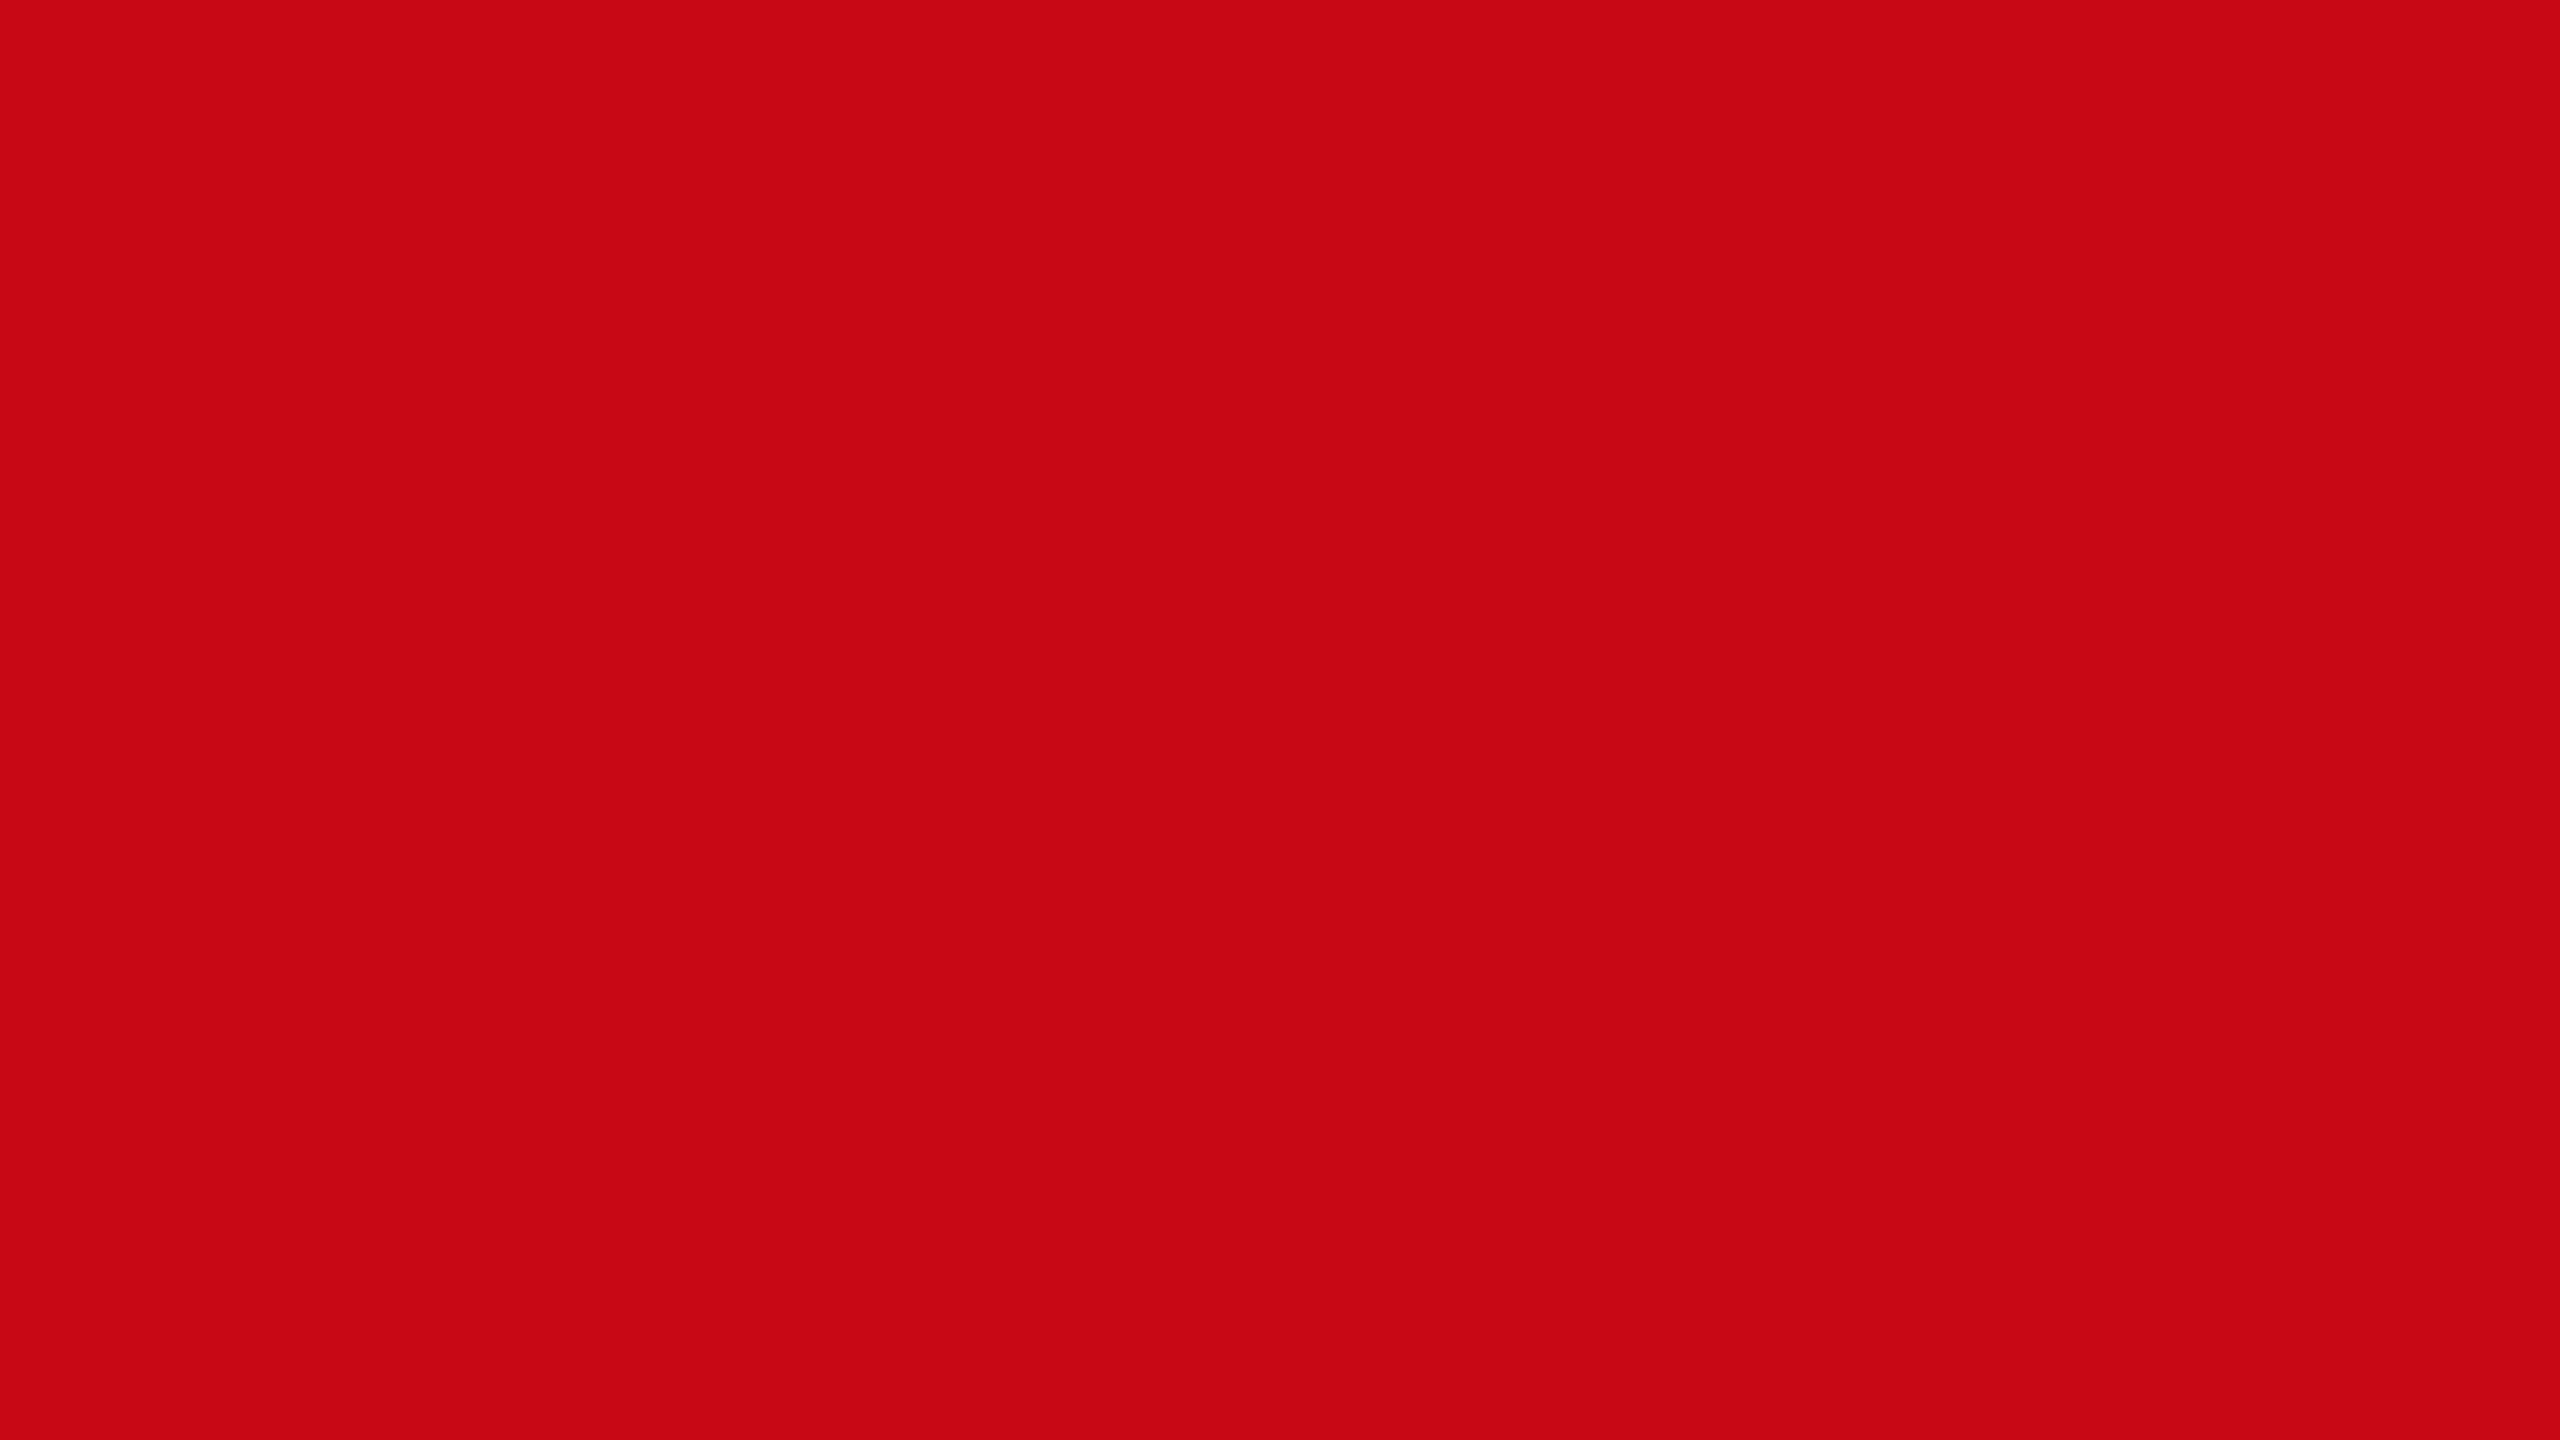 2560x1440 Venetian Red Solid Color Background